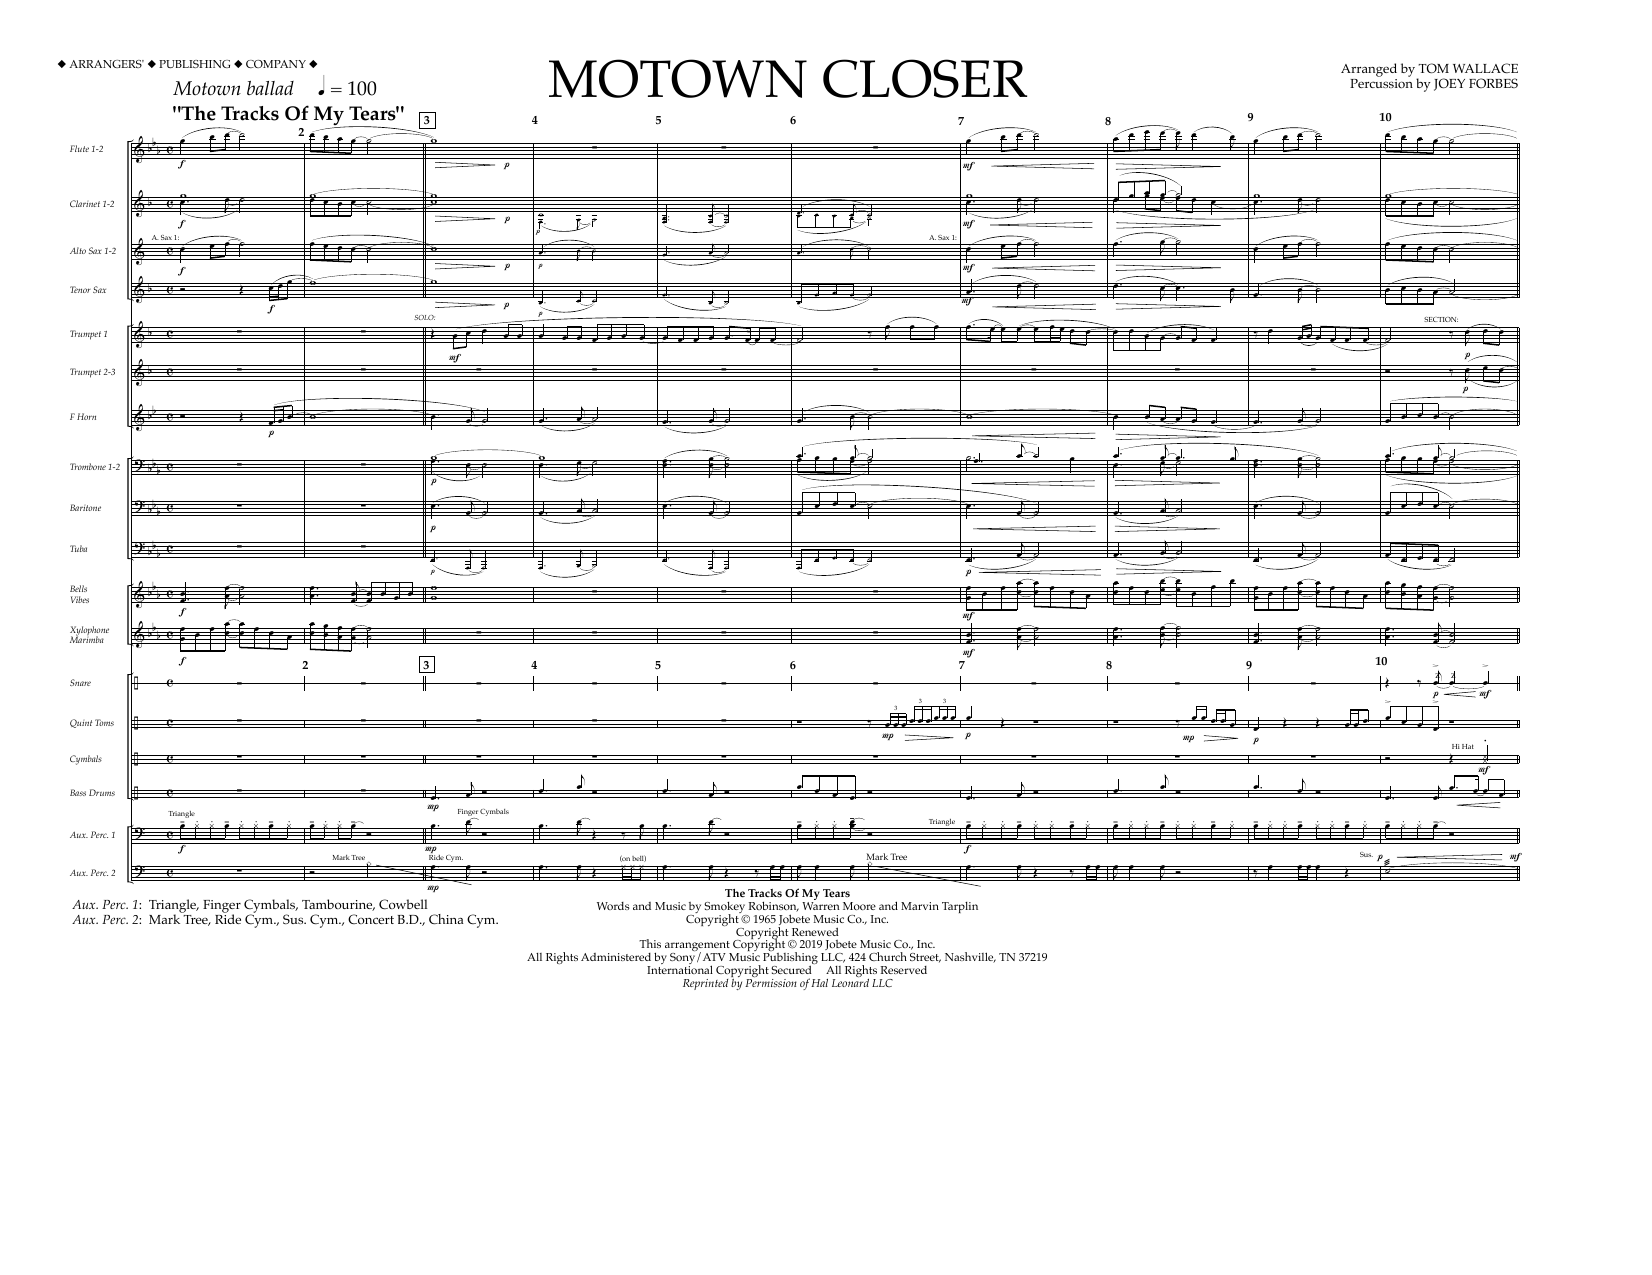 Smokey Robinson Motown Closer (arr. Tom Wallace) - Full Score sheet music notes and chords. Download Printable PDF.